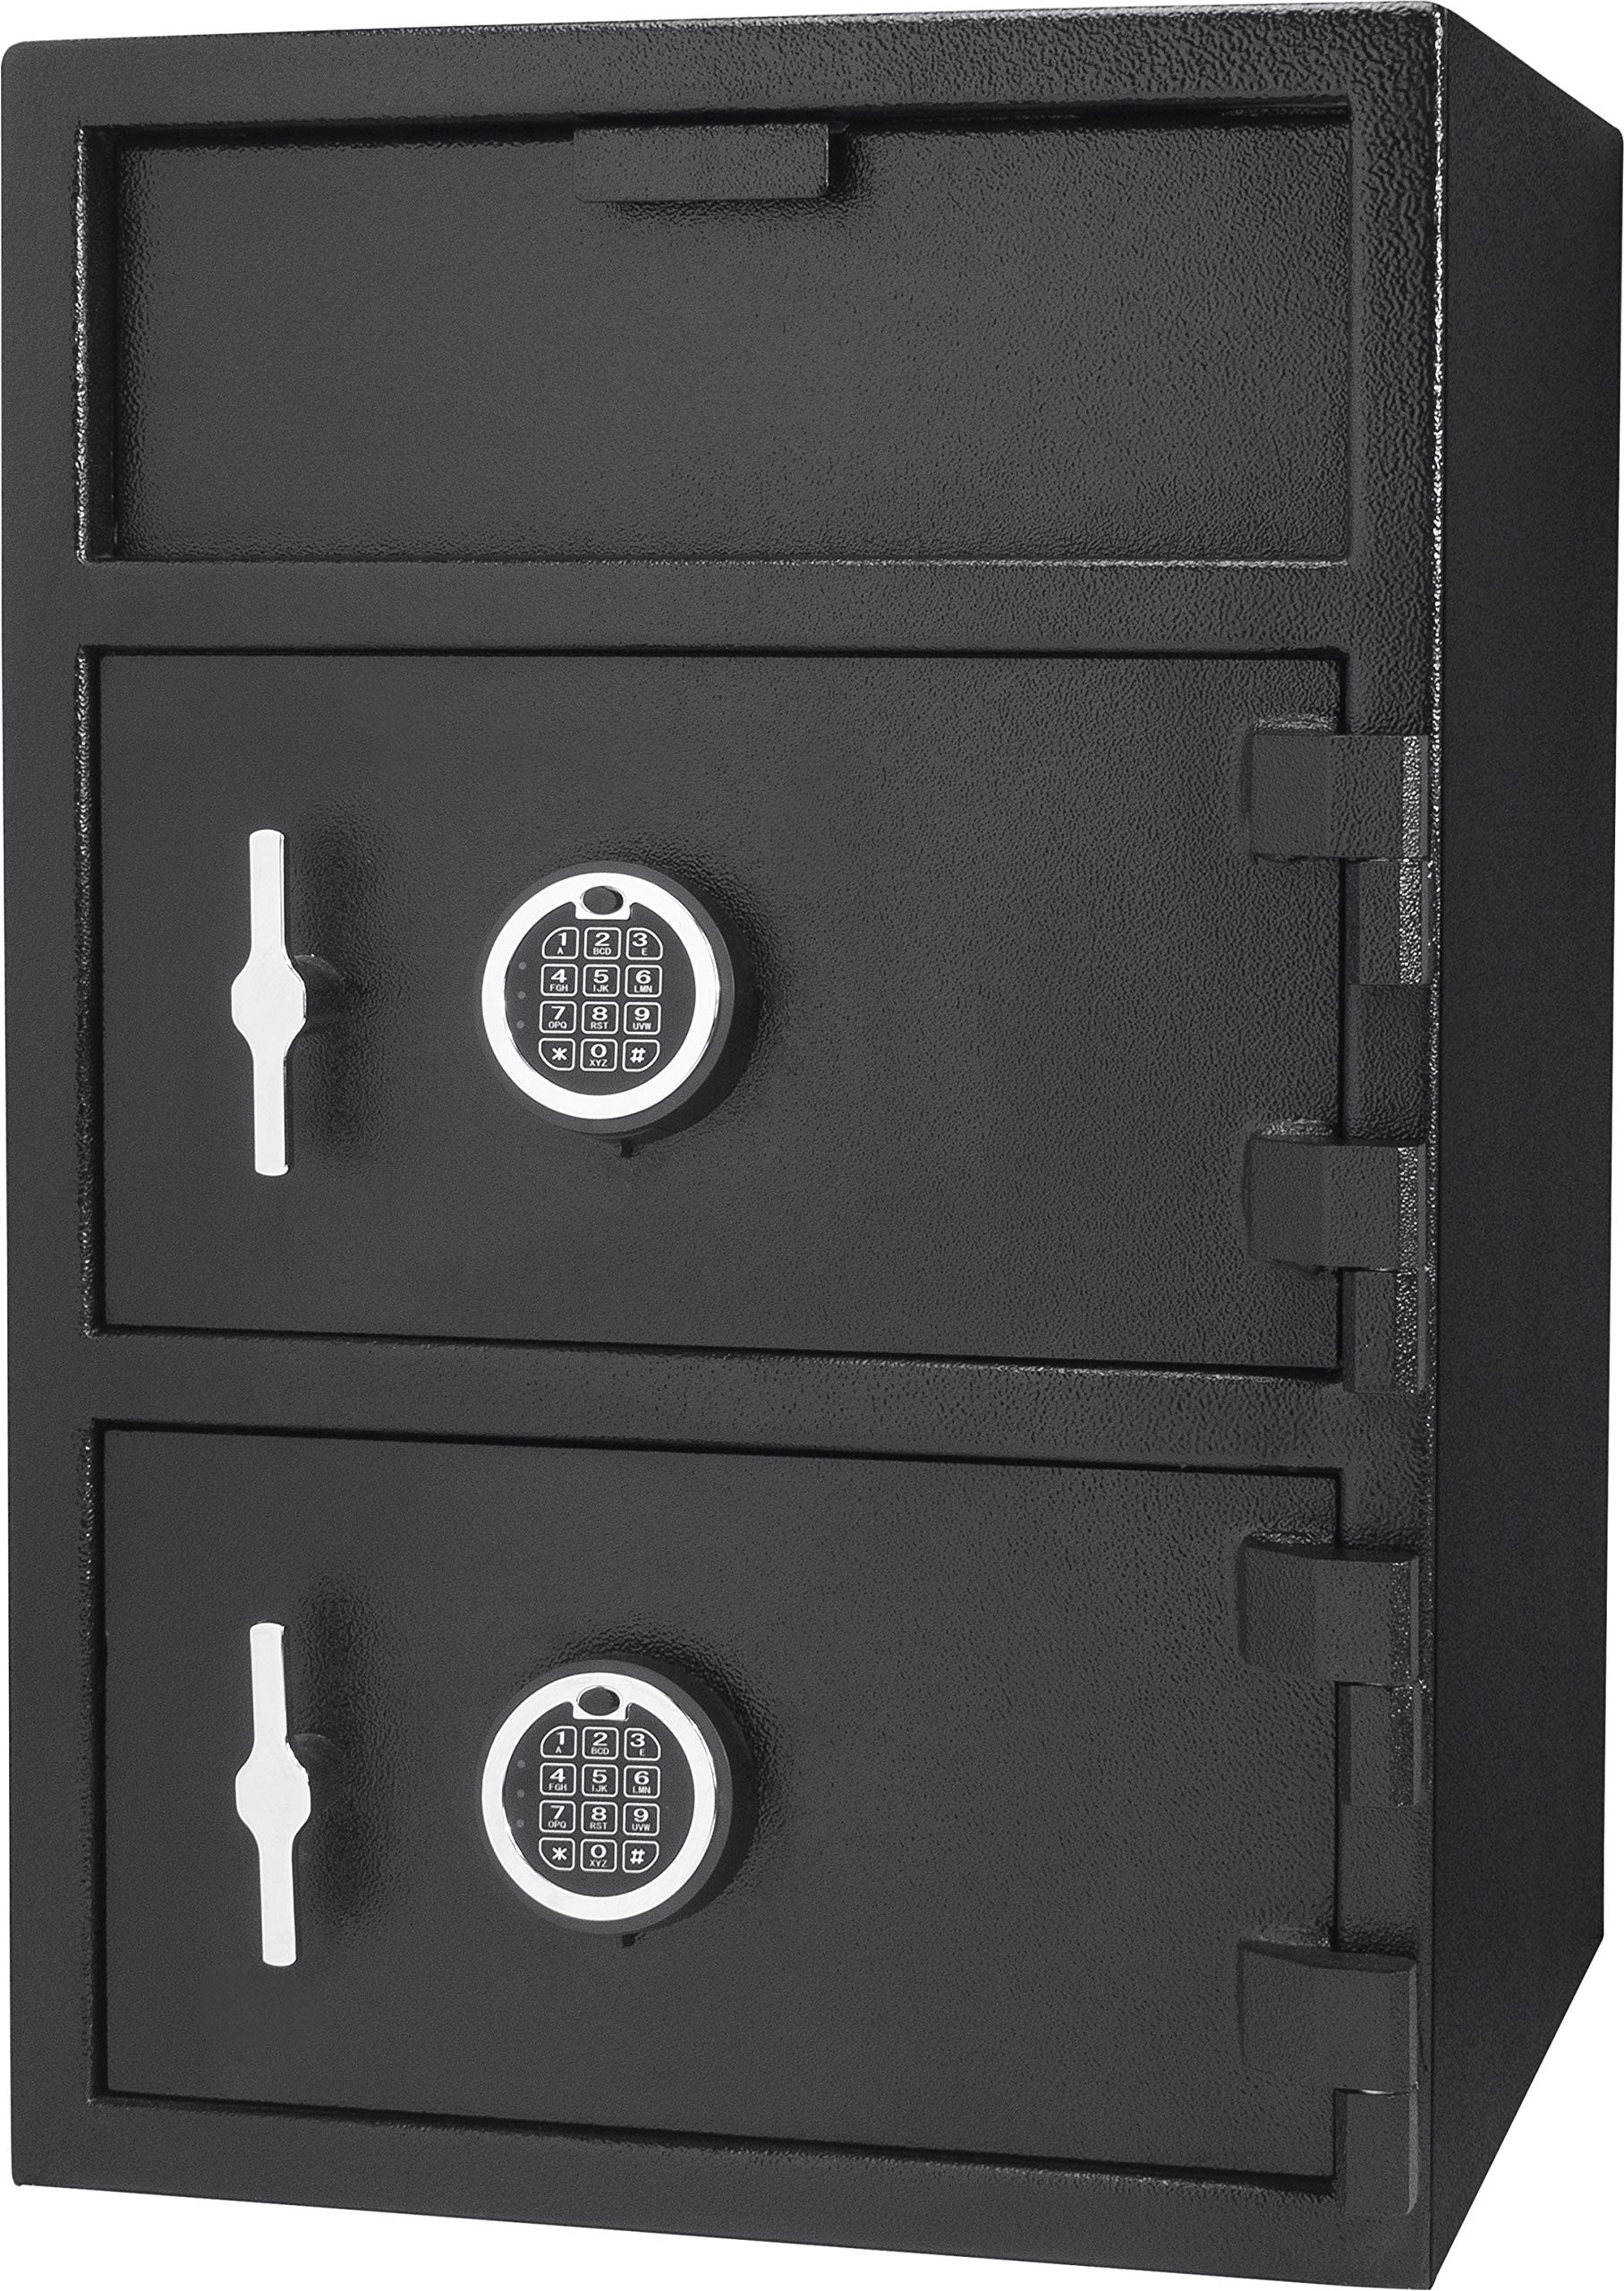 Barsaka Steel Double Door Depository Safe Front Loading Drop Slot Parcel Mail Safe with Locker Dual Electronic Lock